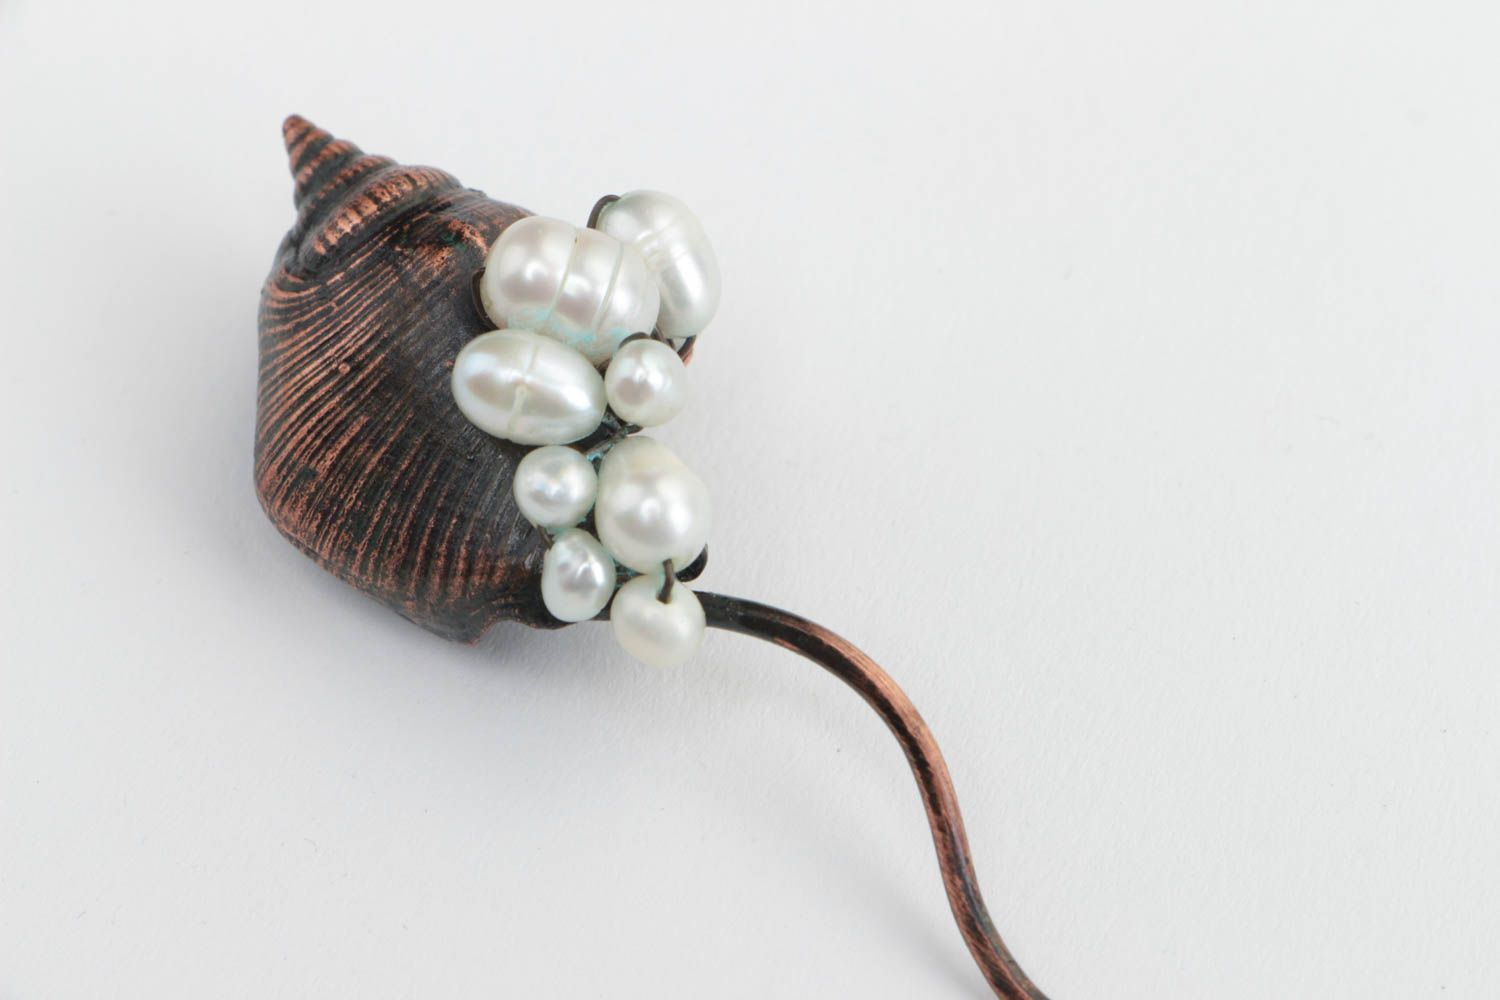 Hair pins Handmade designer decorative copper hair pin with fresh water pearls and shell - MADEheart.com